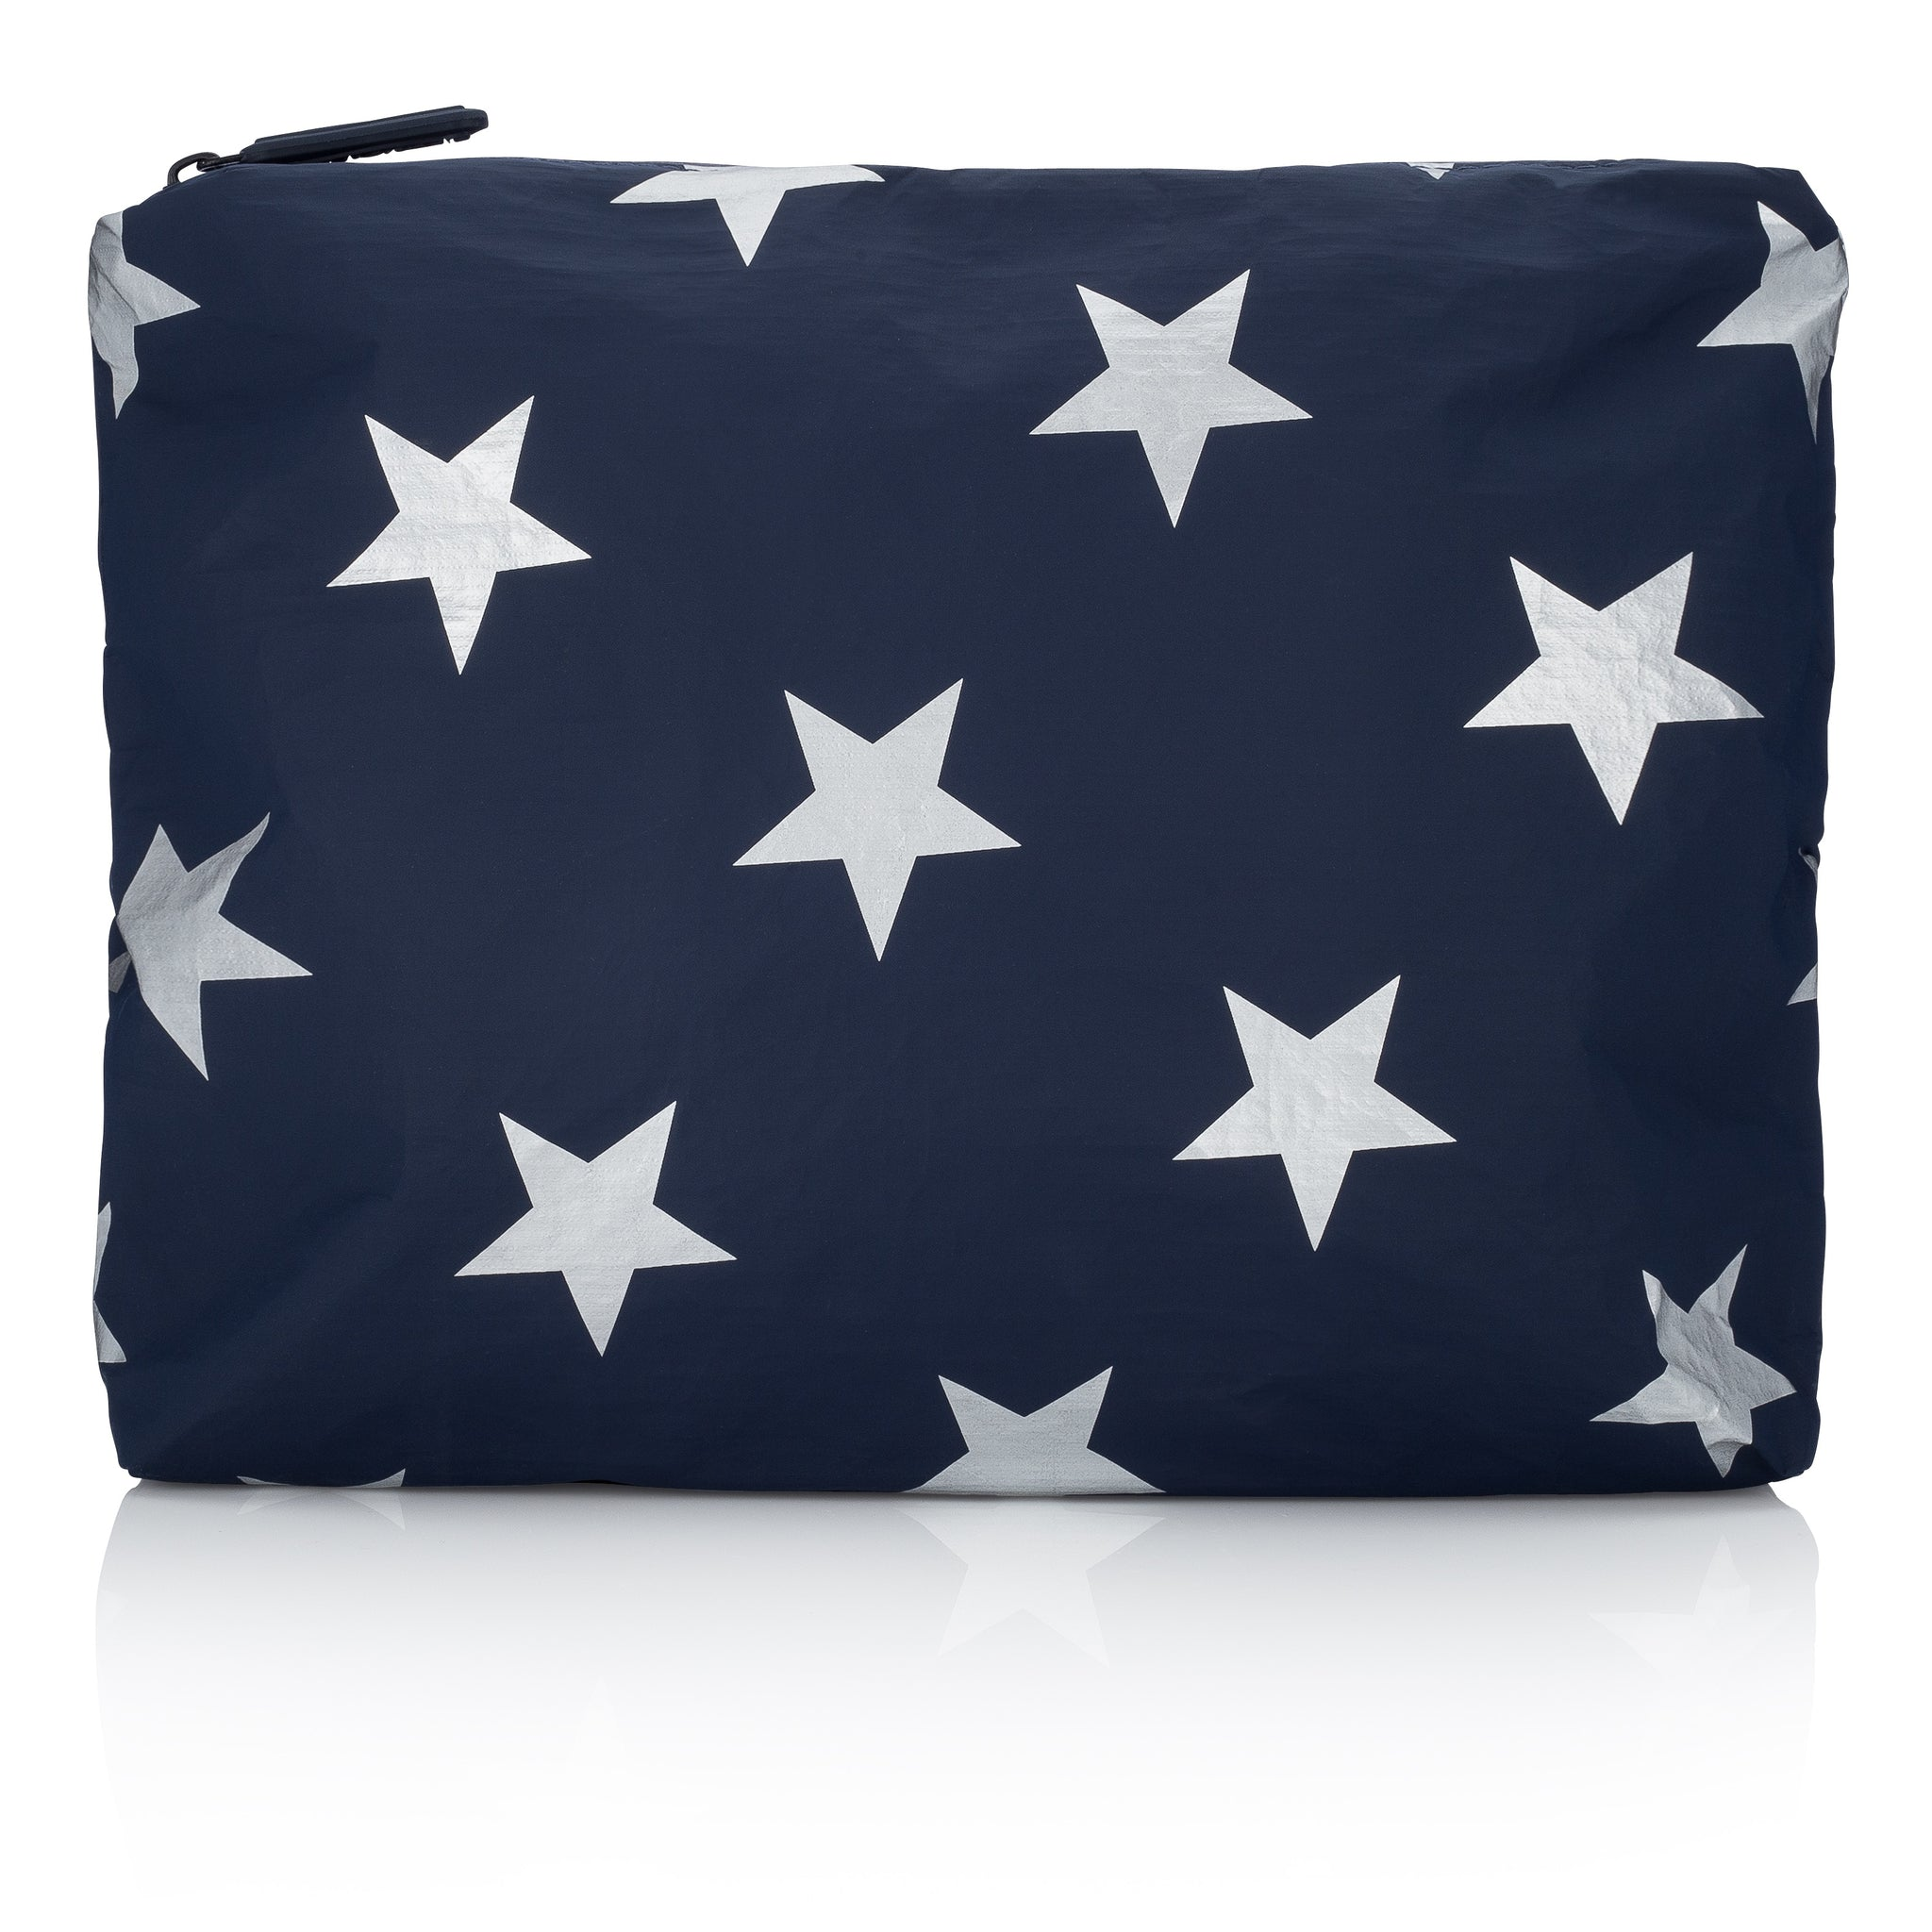 Medium Pack - Travel Pouch - Gym Bag - Navy HLT Collection with Silver Stars